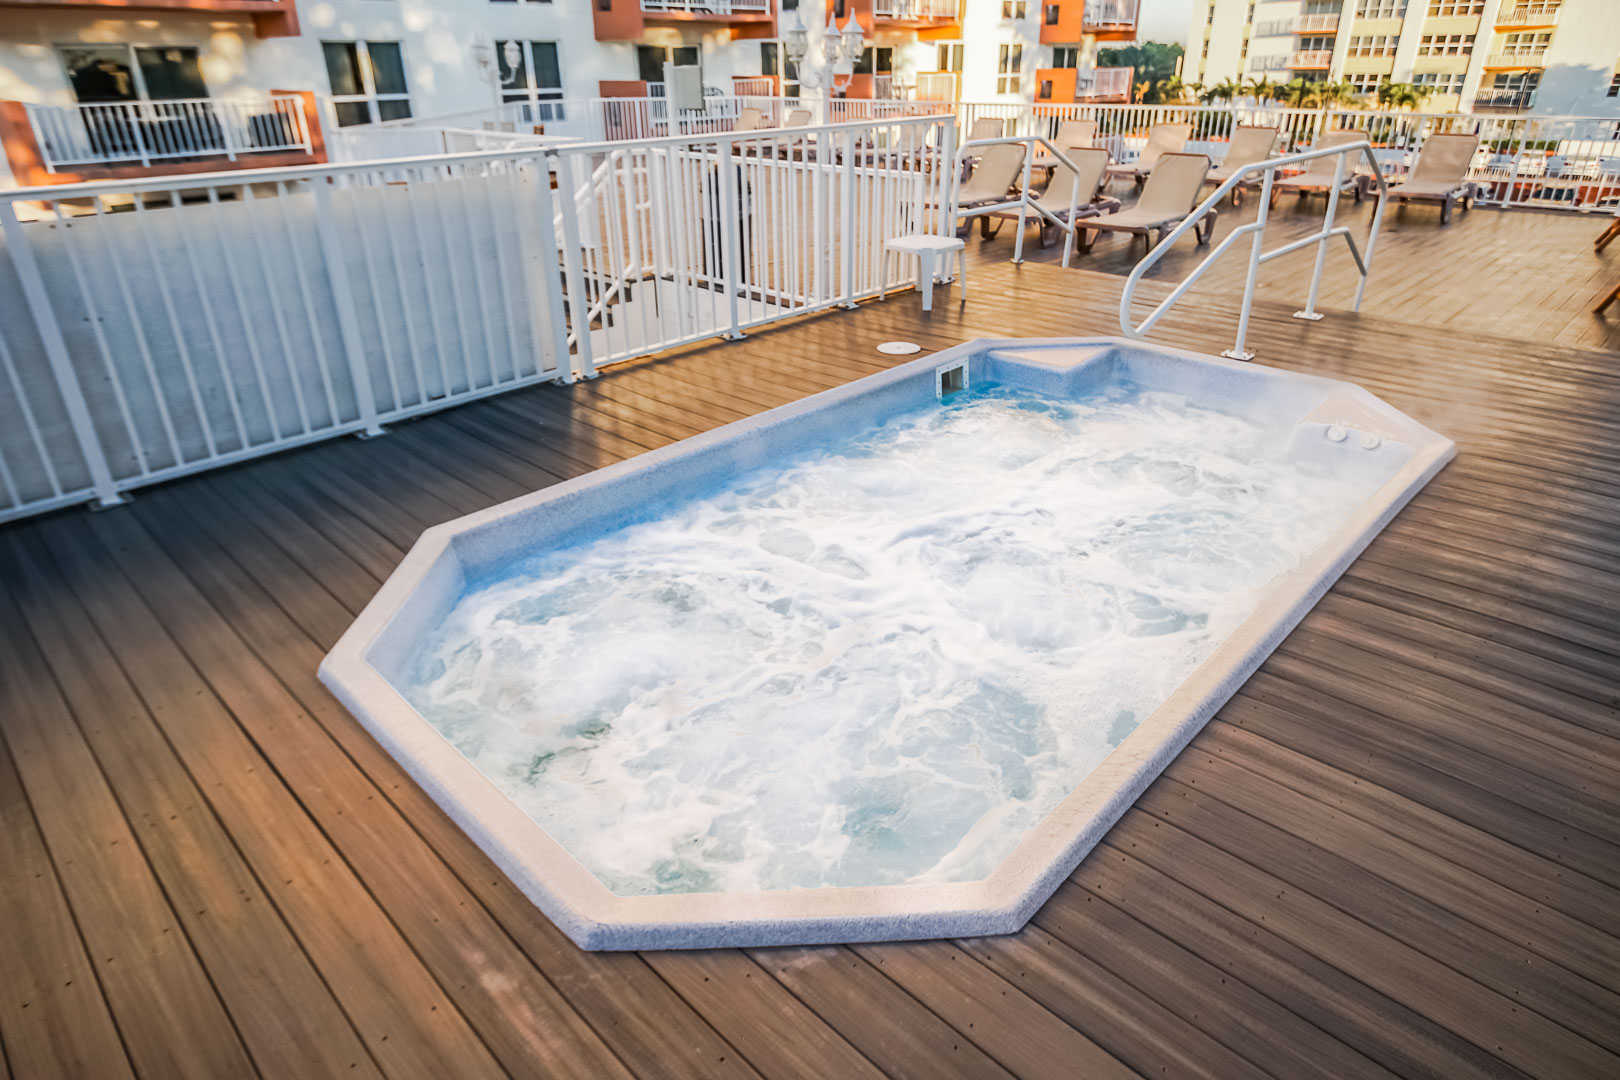 Jacuzzi at the pool deck at VRI's Ft. Lauderdale Beach Resort in Florida.